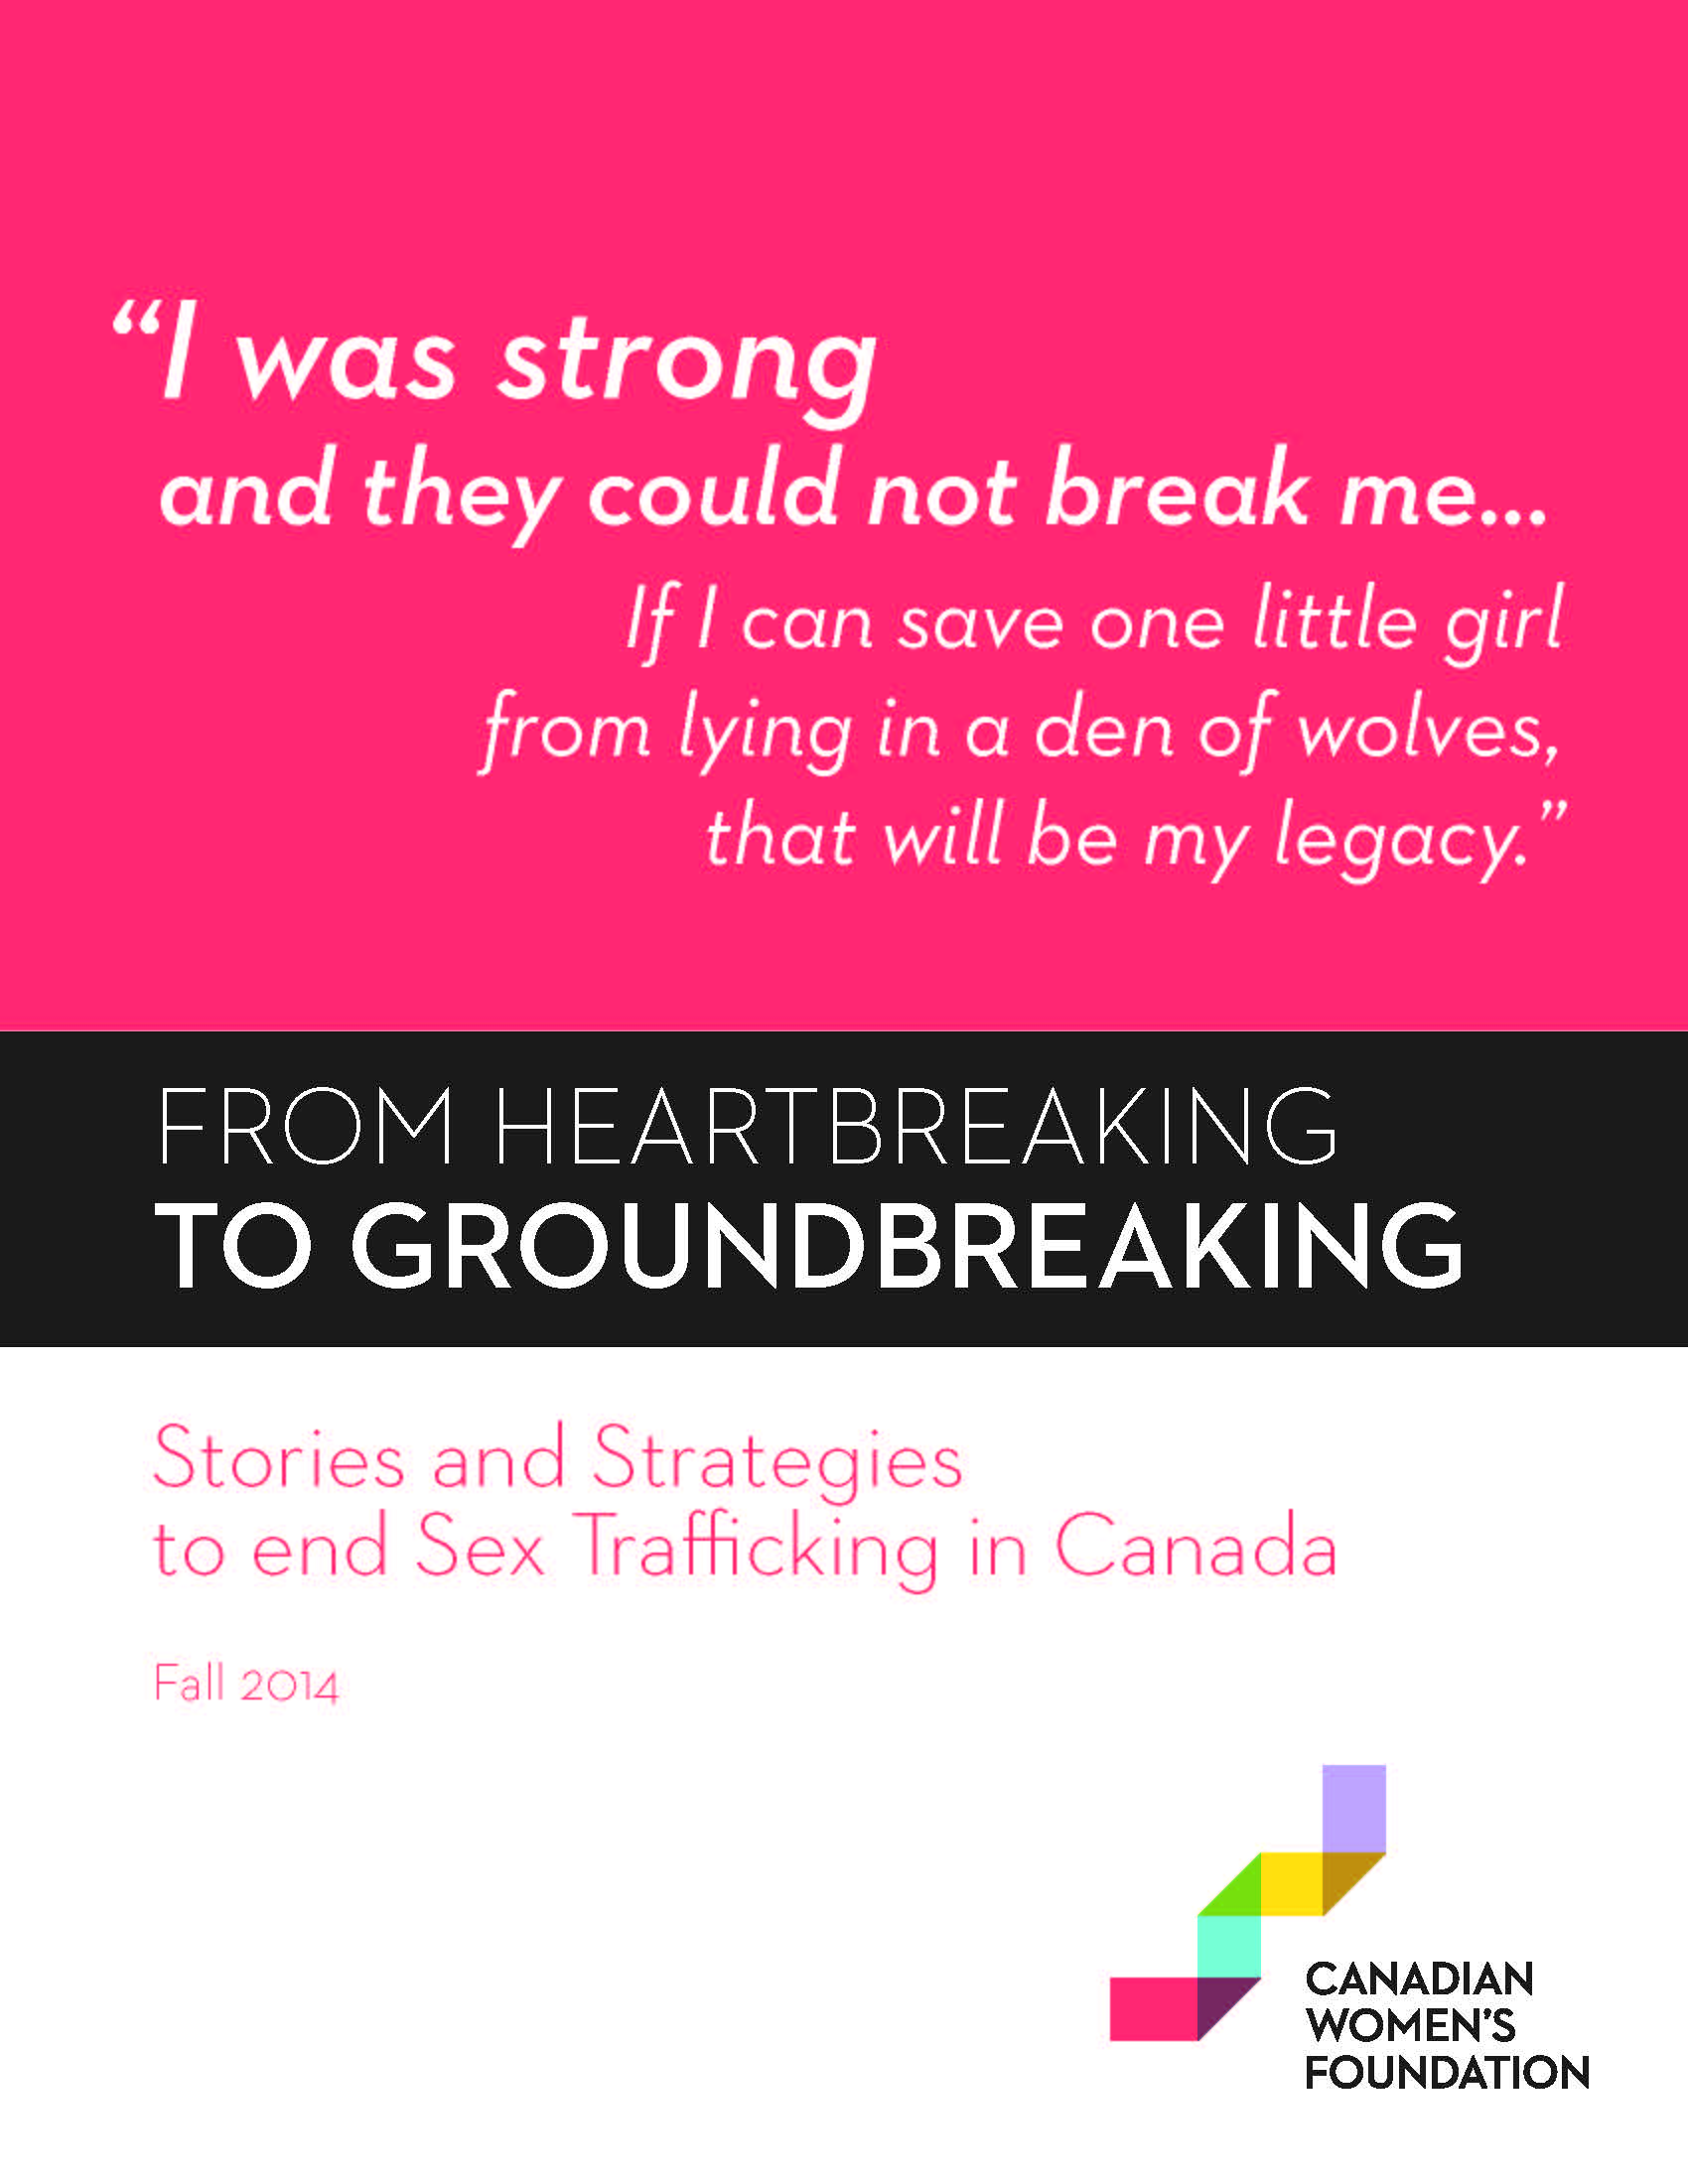 From Heartbreaking to Groundbreaking: Stories and Strategies to end Sex Trafficking in Canada, 2014